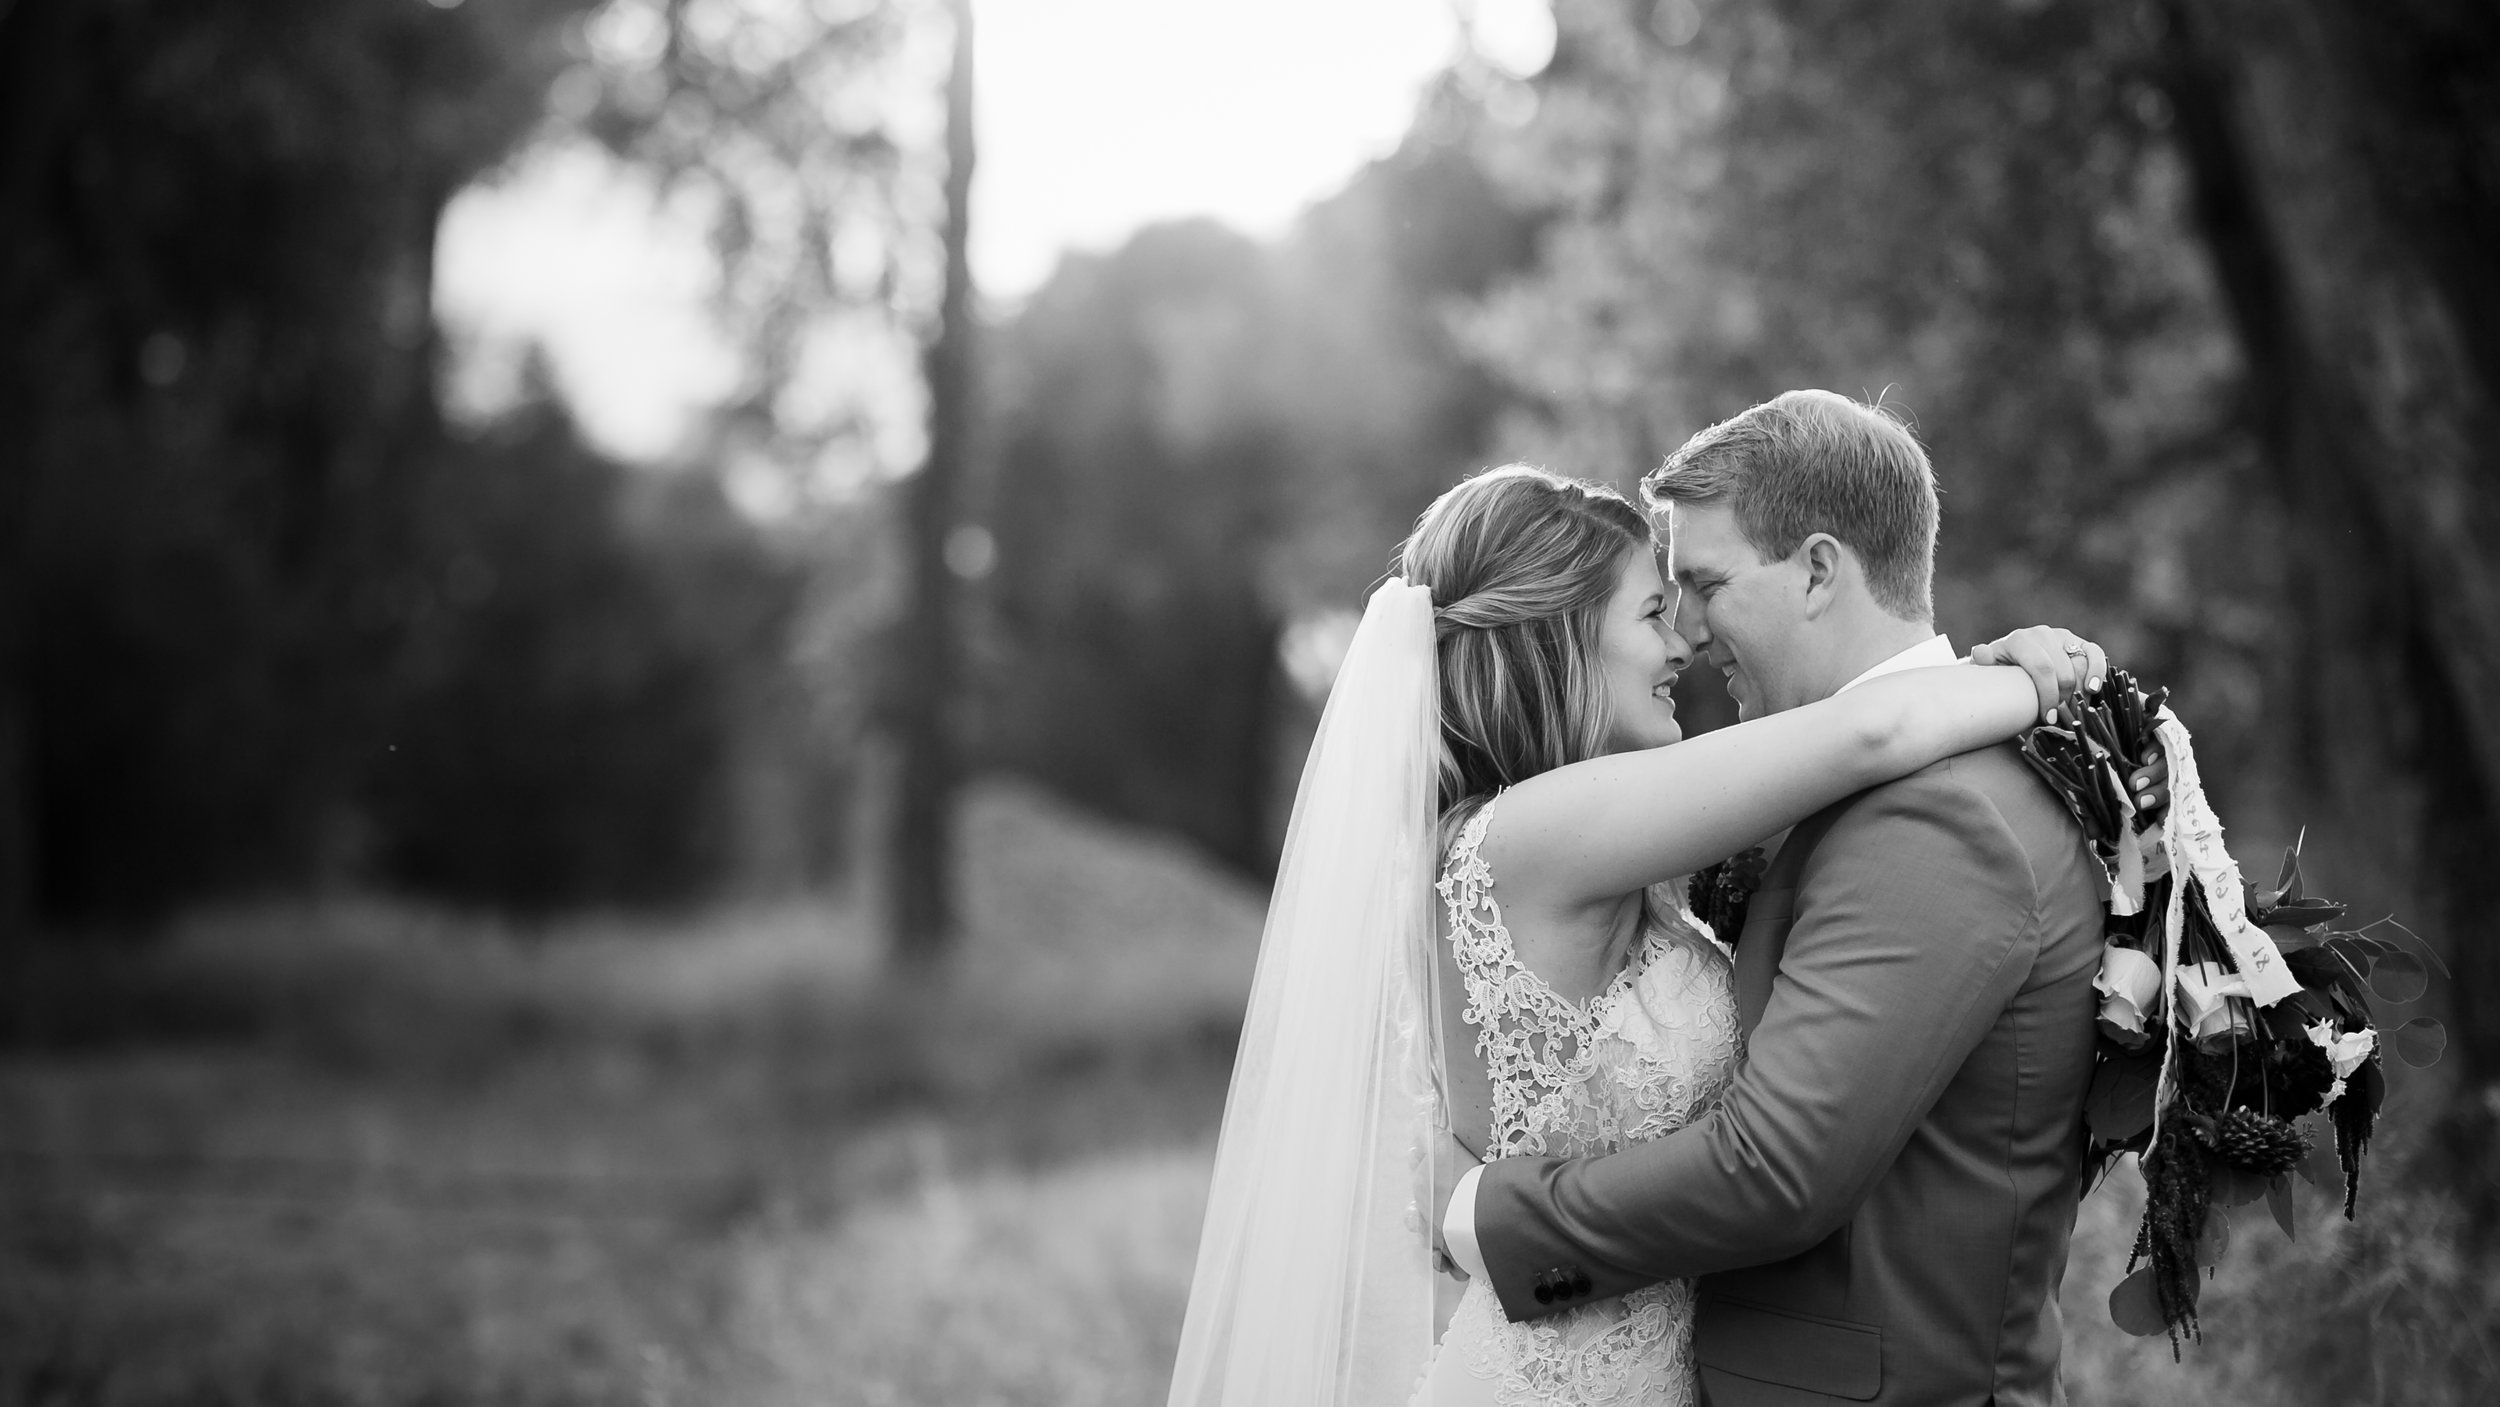 Creating real candid moments is easy on a wedding day.